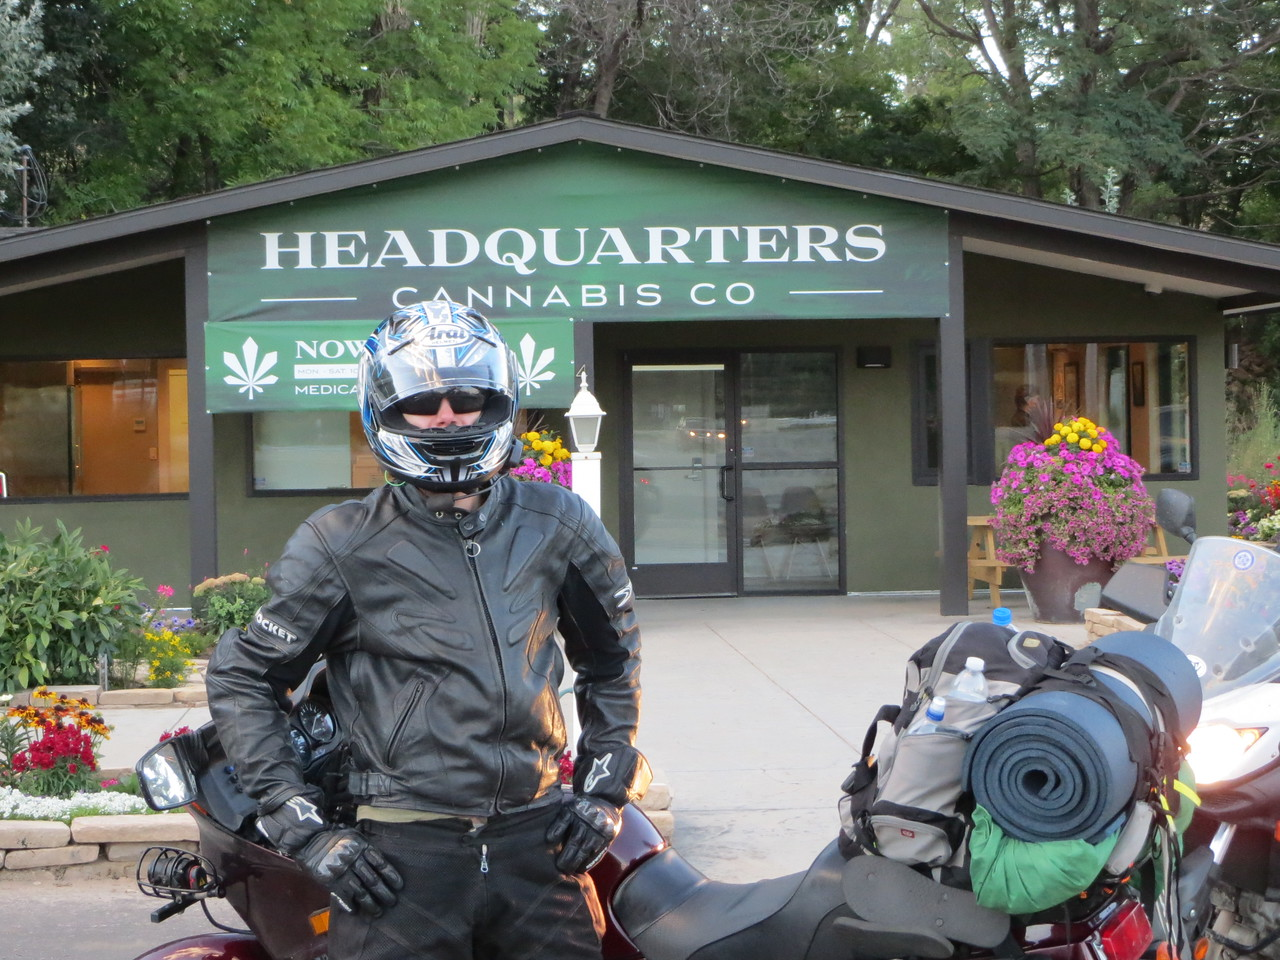 Day 2 (796 miles): Marijuana is now legal in Colorado, and they sell it right out of legitimate storefronts.